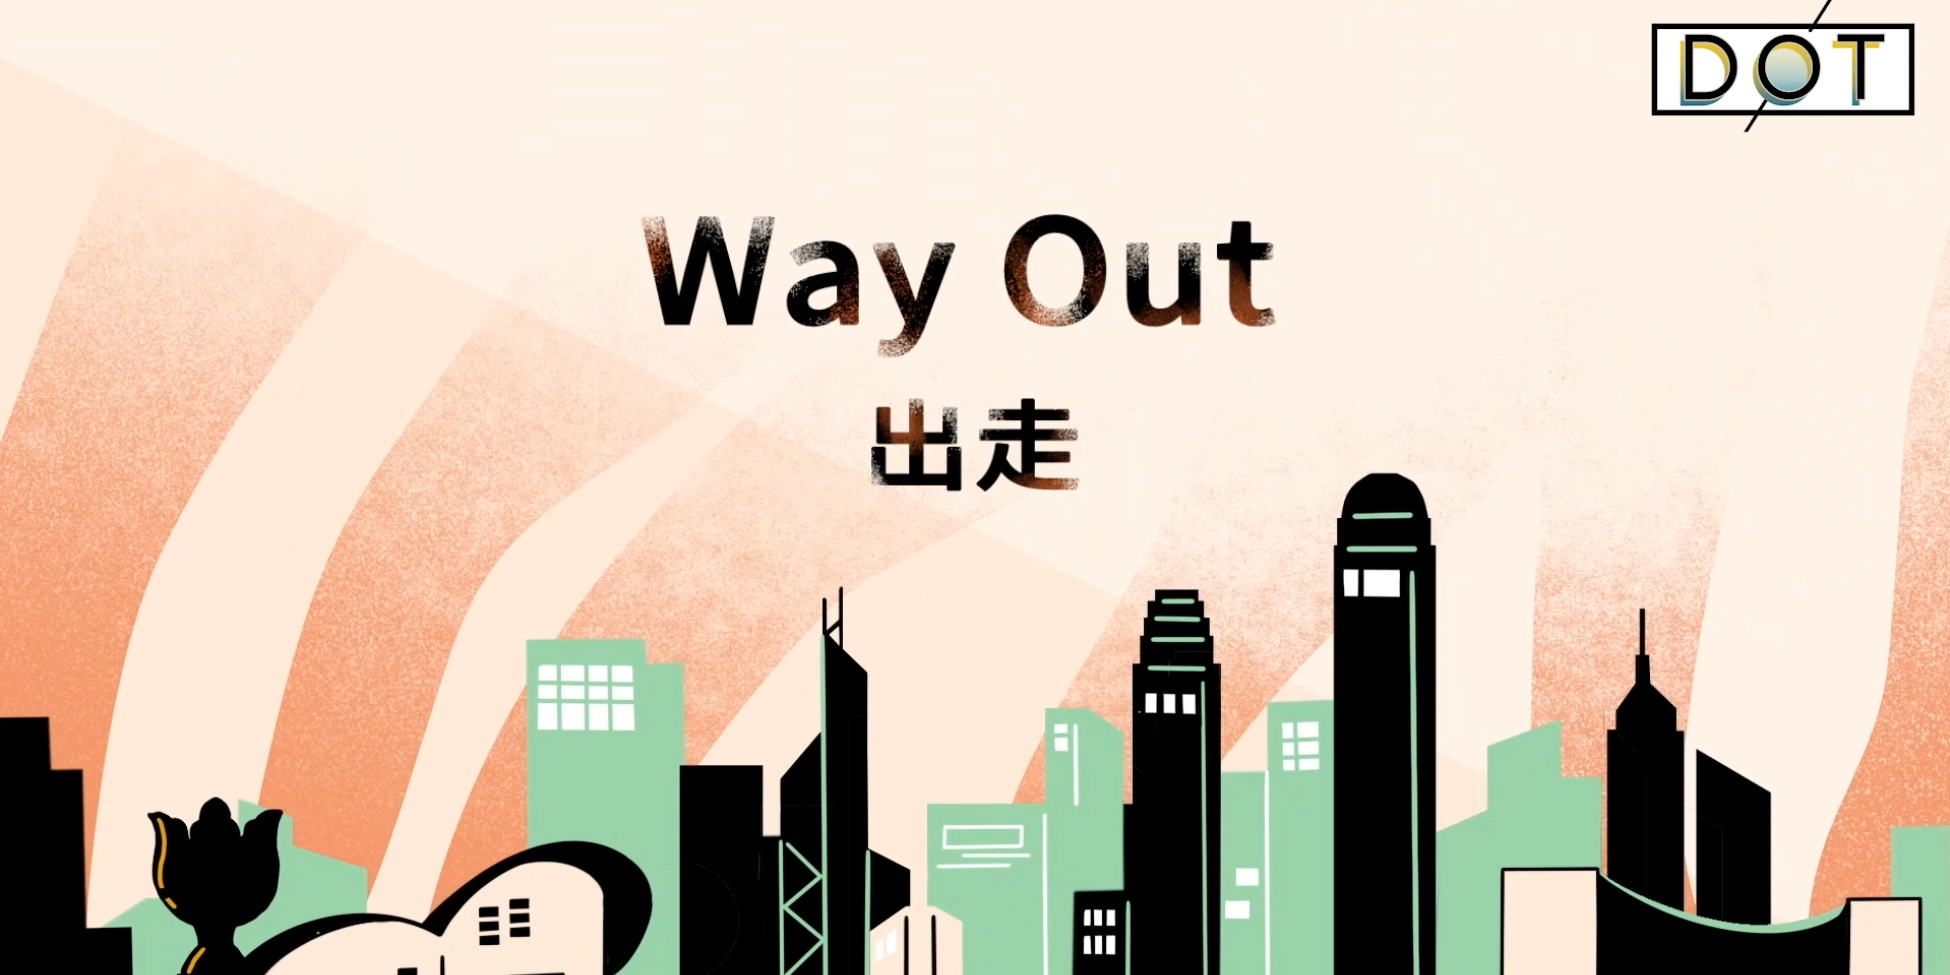 Silver Lining beyond HK Chaos | Way Out